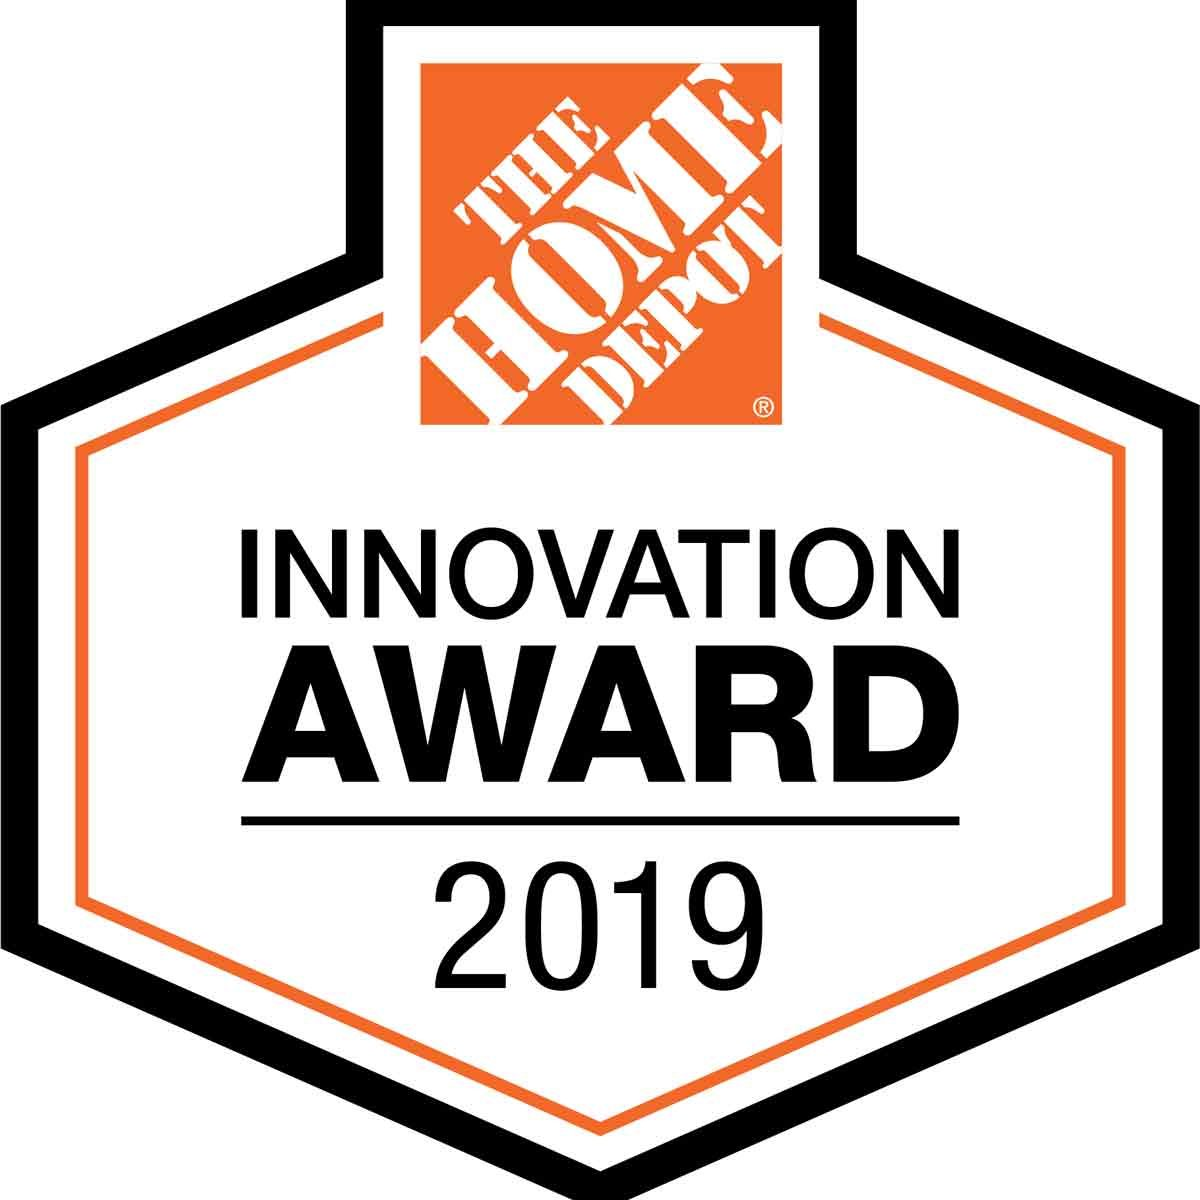 The Home Depot 2019 Innovation Award